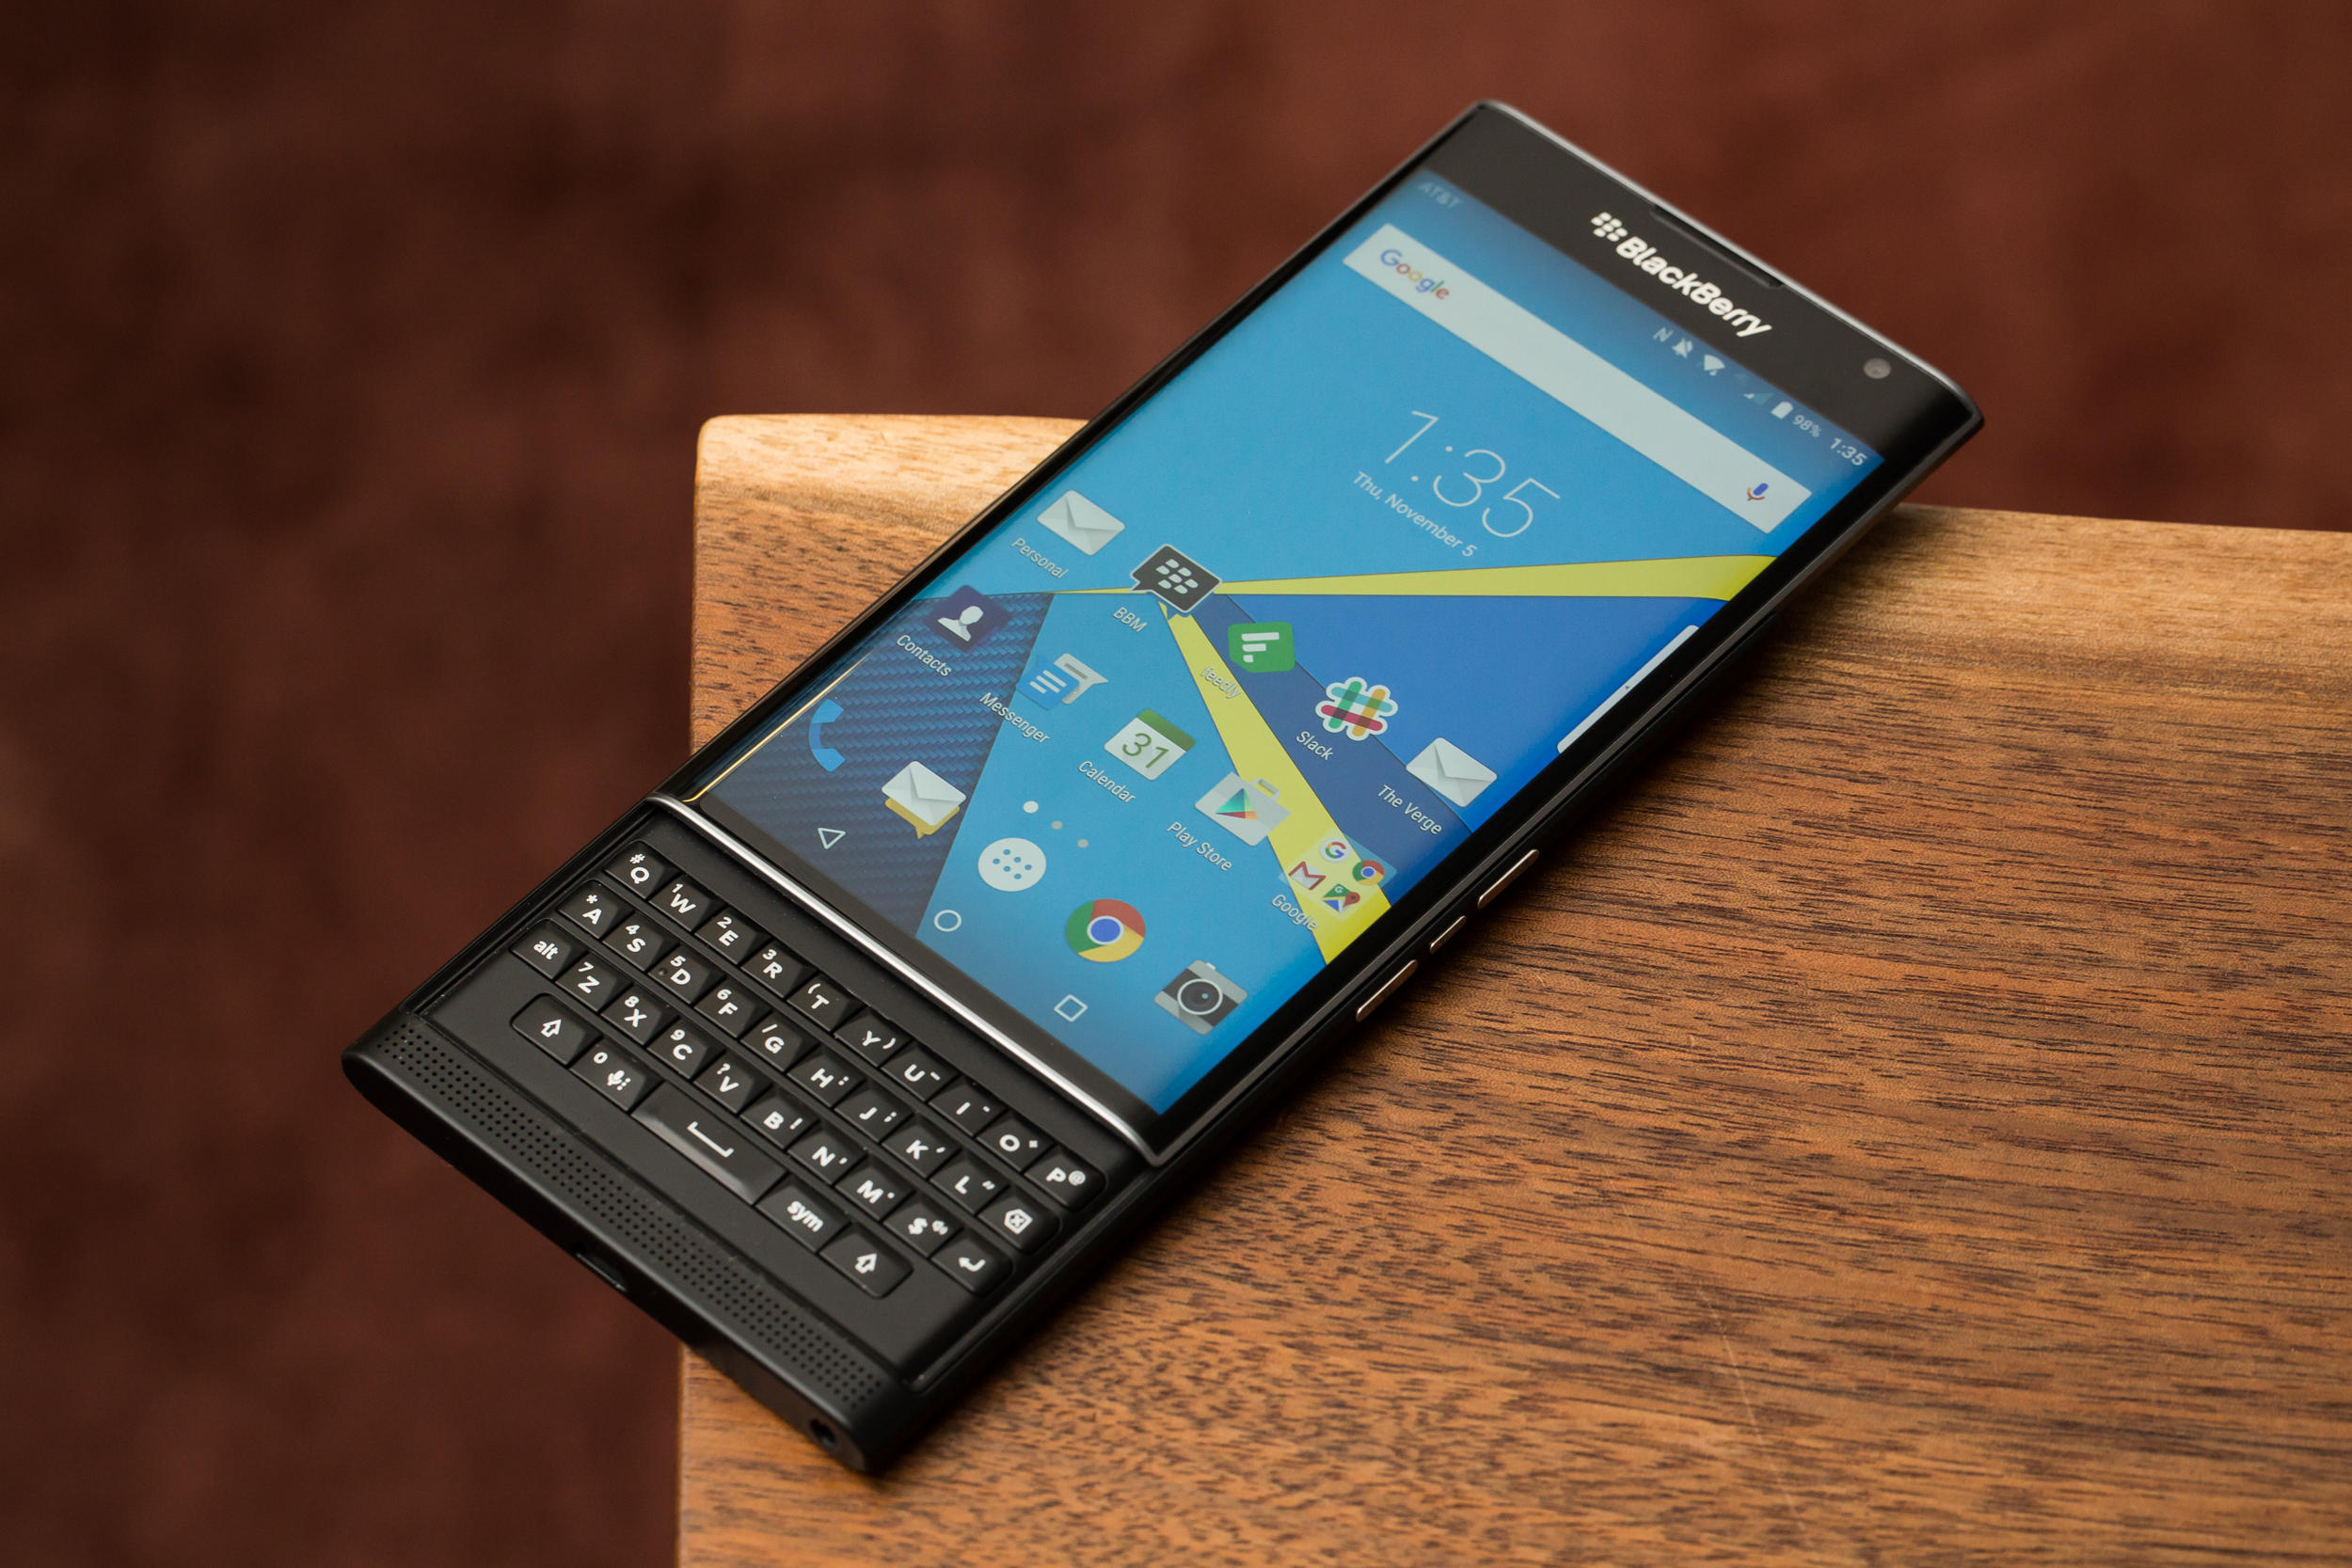 BlackBerry Priv AT&T GSM Unlocked Smartphone w/ Physical Keyboard